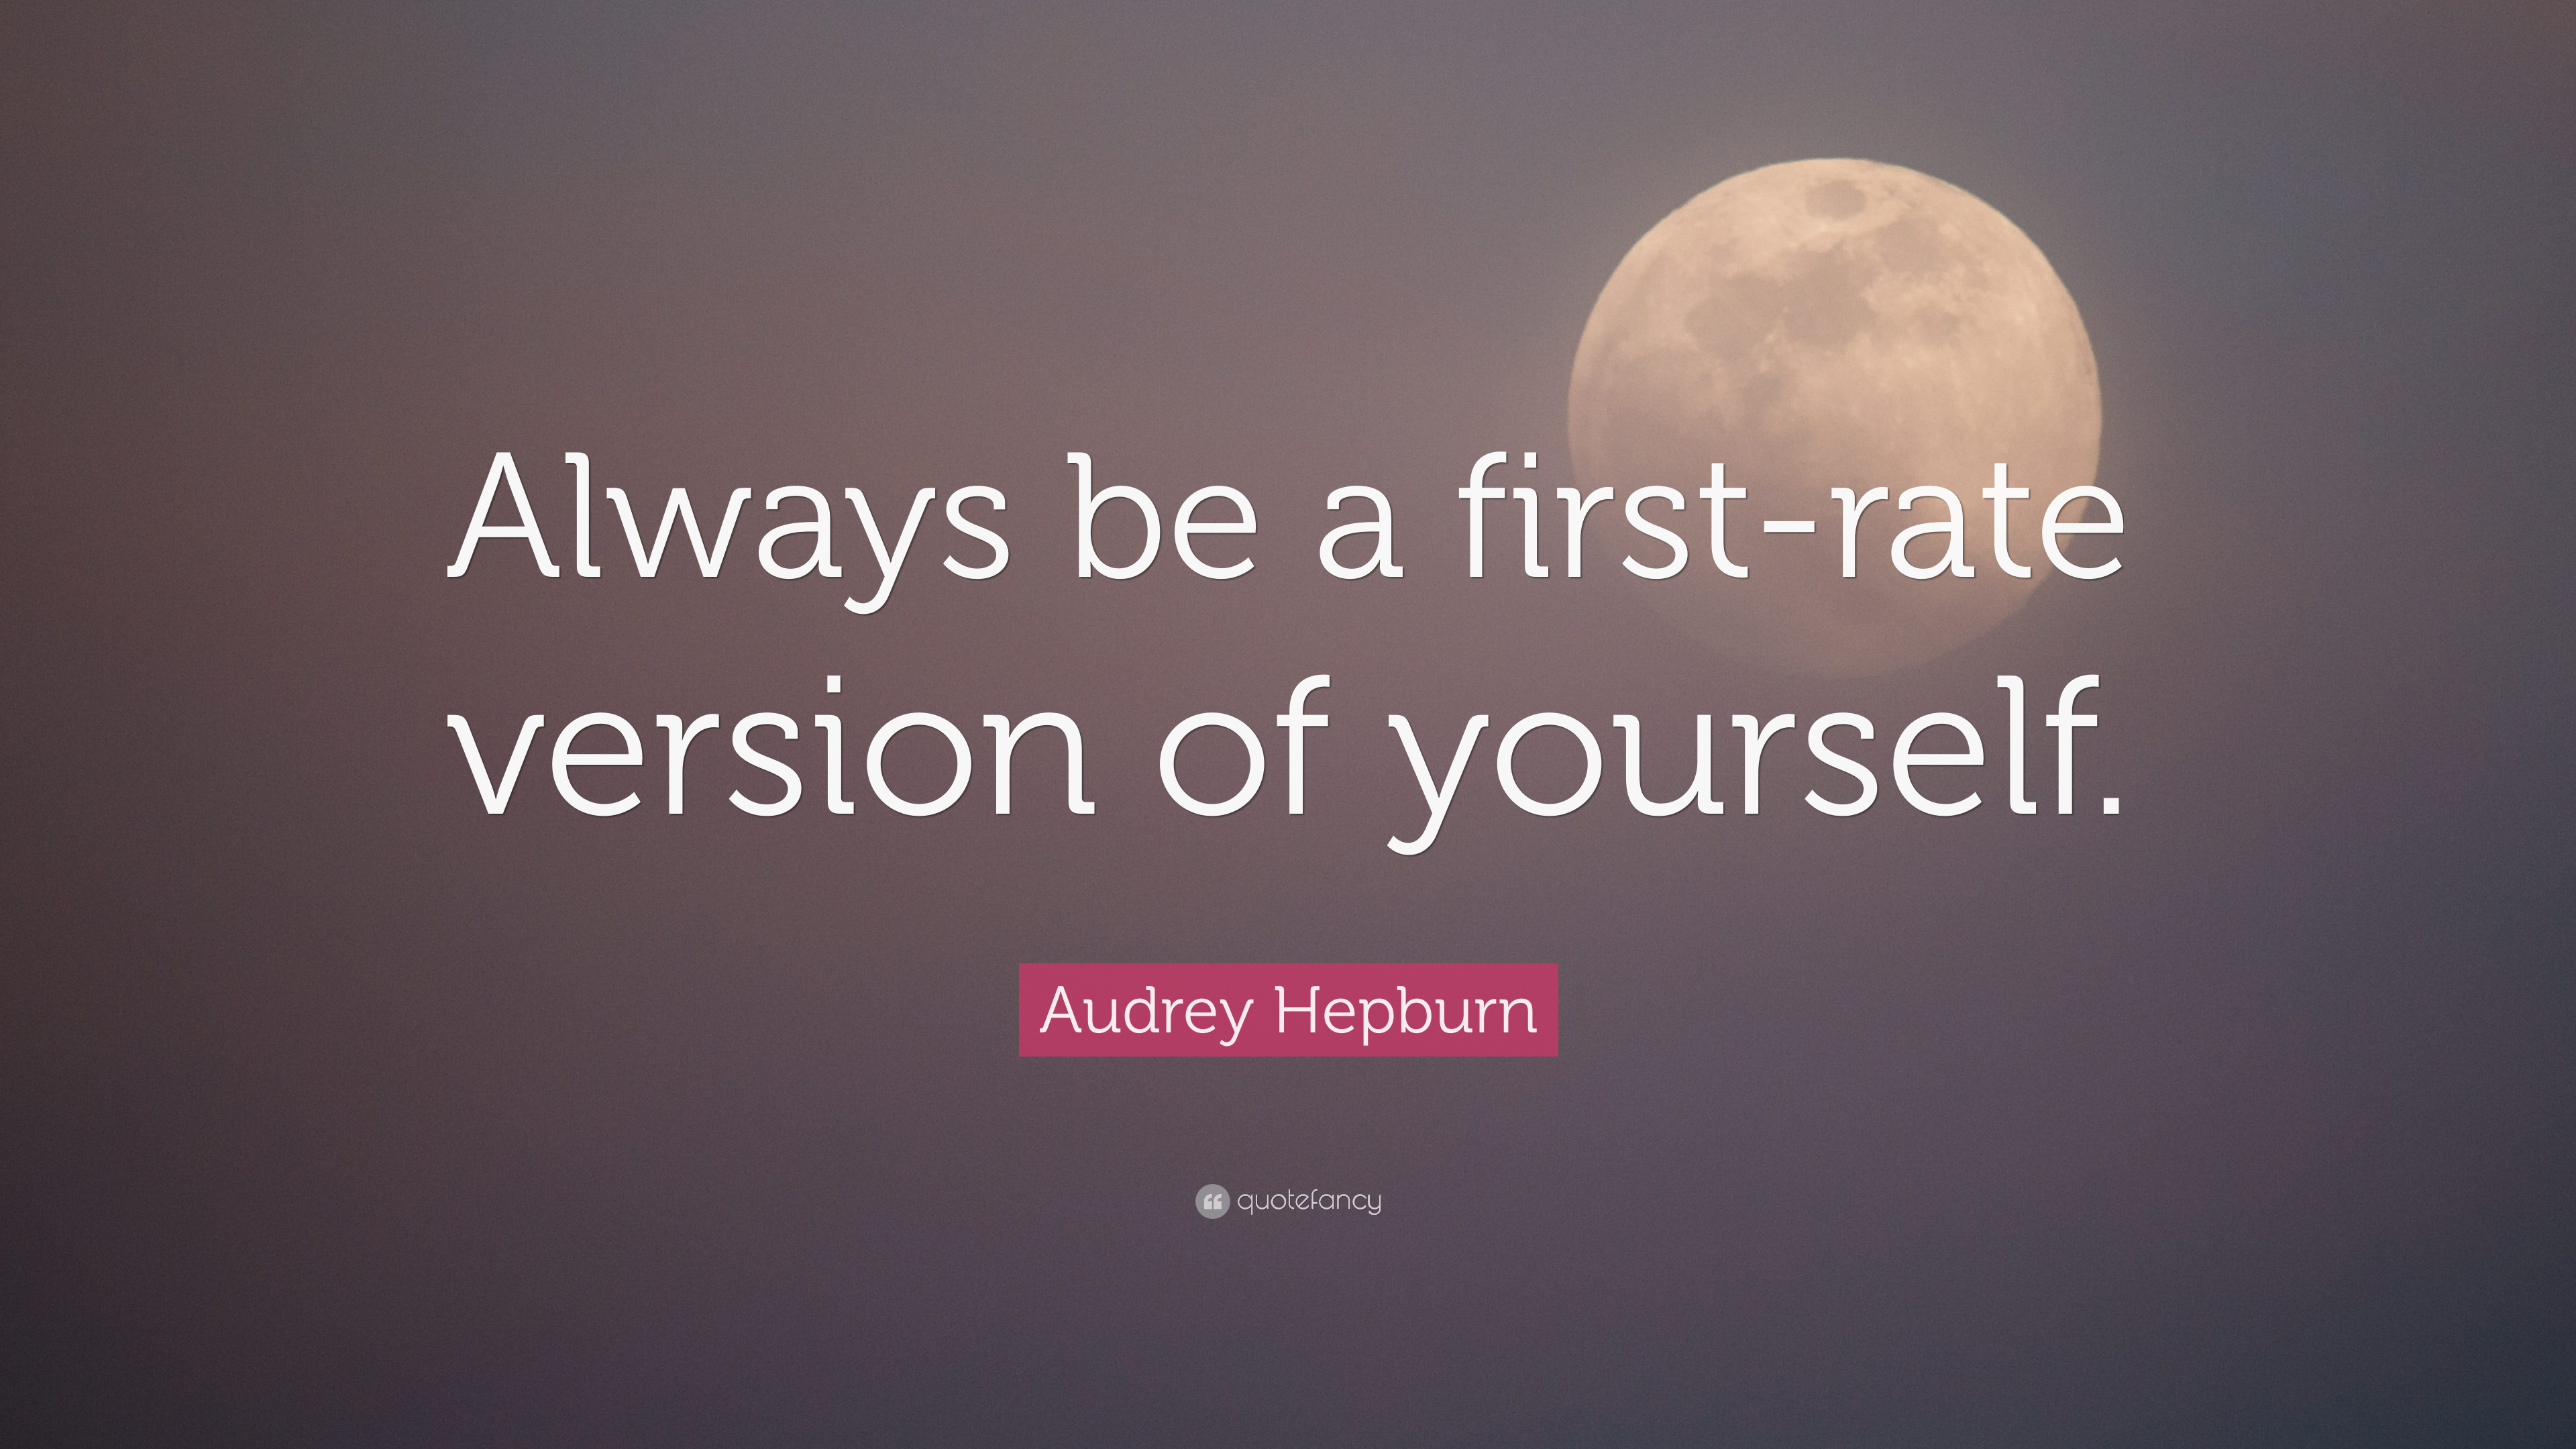 """Audrey Hepburn Quote: """"Always be a first-rate version of yourself."""" (10  wallpapers) - Quotefancy"""